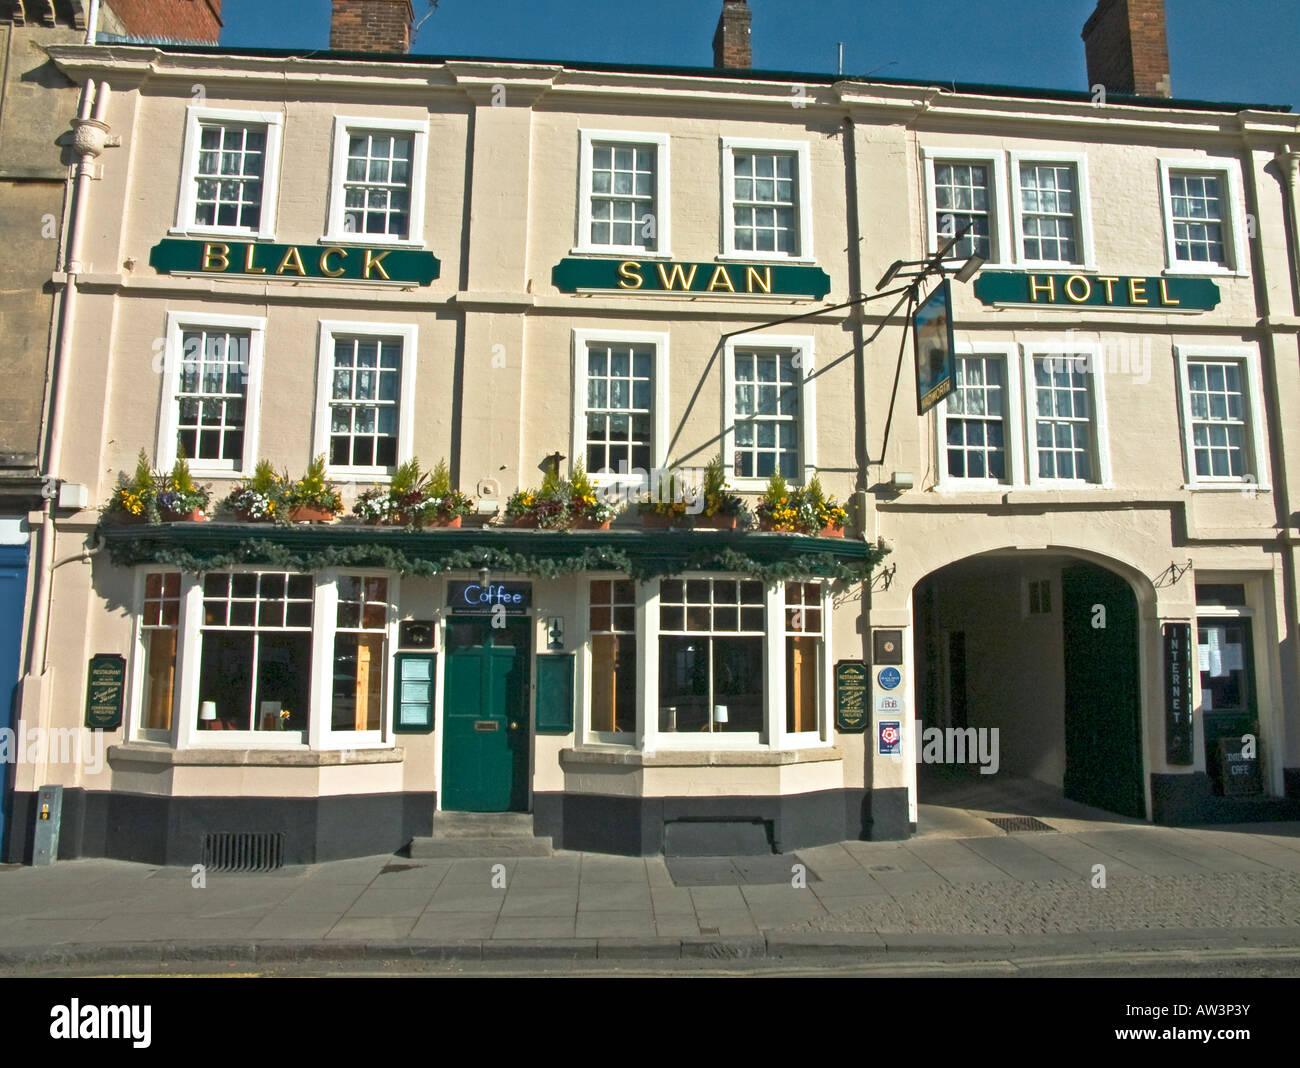 Black Swan Hotel a former coaching inn in Devizes Wilts England UK EU - Stock Image